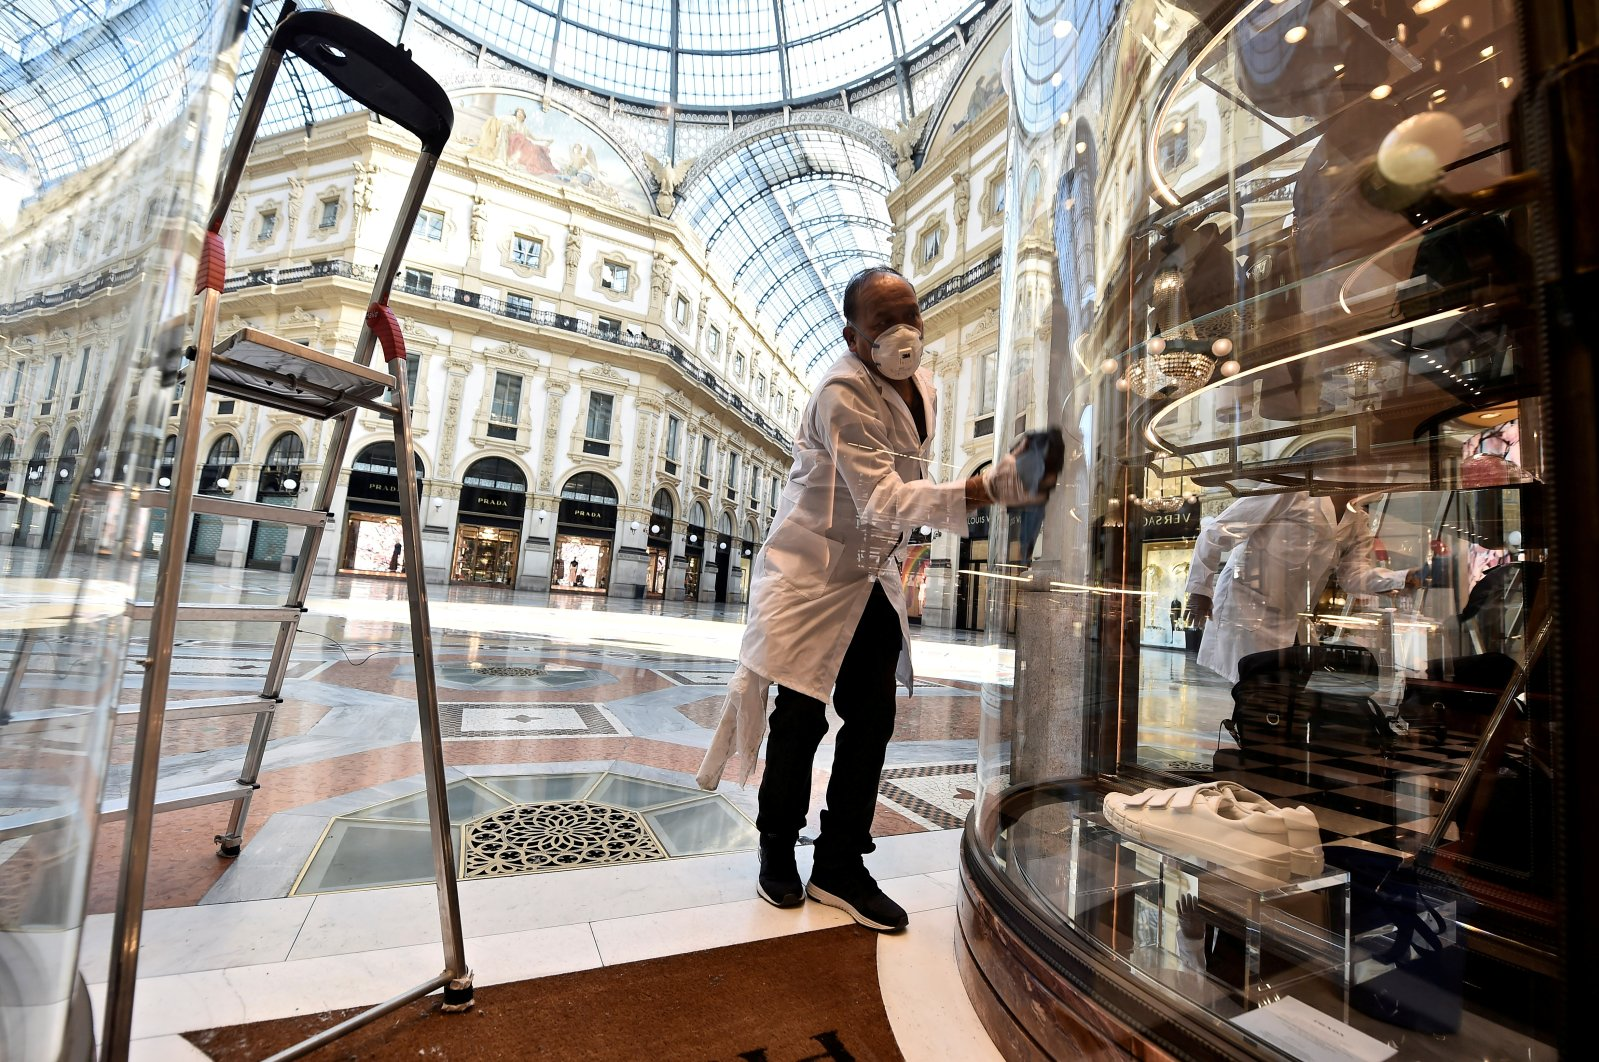 A worker prepares a store on the reopening day at Galleria Vittorio Emanuele II, as Italy eases some of the lockdown measures put in place during the coronavirus outbreak, in Milan, Italy, May 18, 2020. (Reuters Photo)